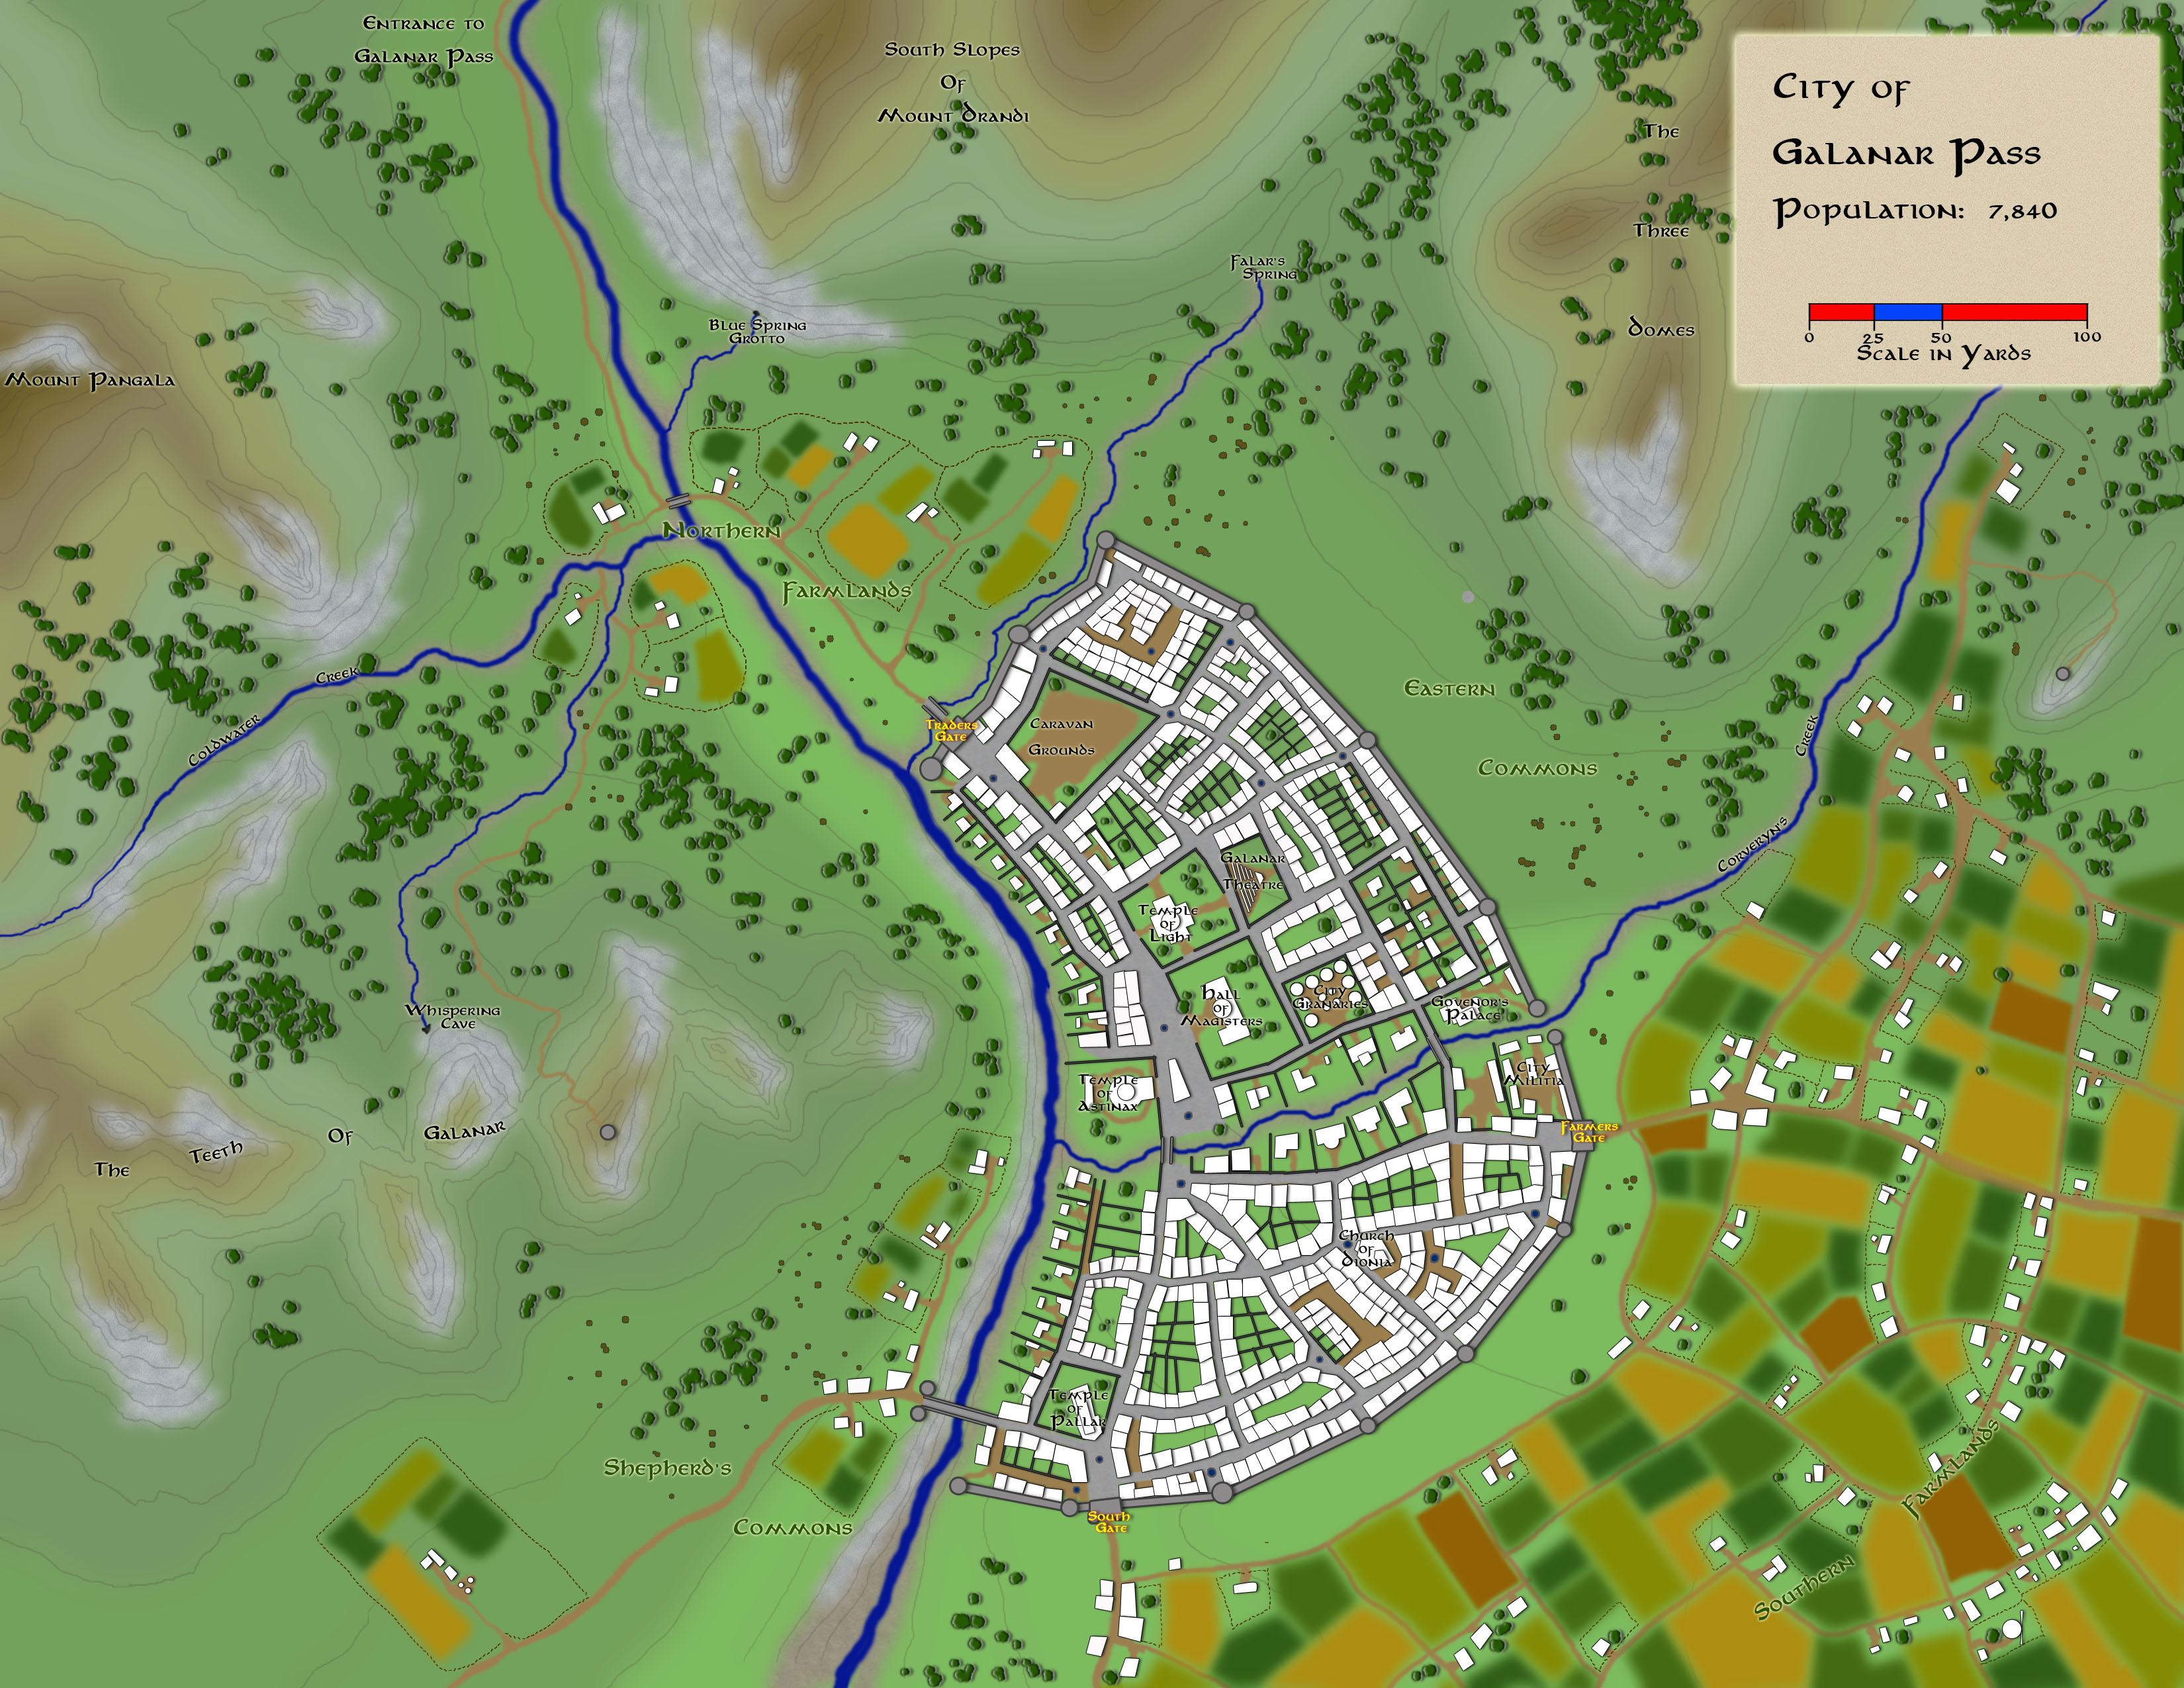 This is the city of Galanar Pass in the Free States.  It is at the southern end of the Galanar Pass.  This map was done in Photoshop